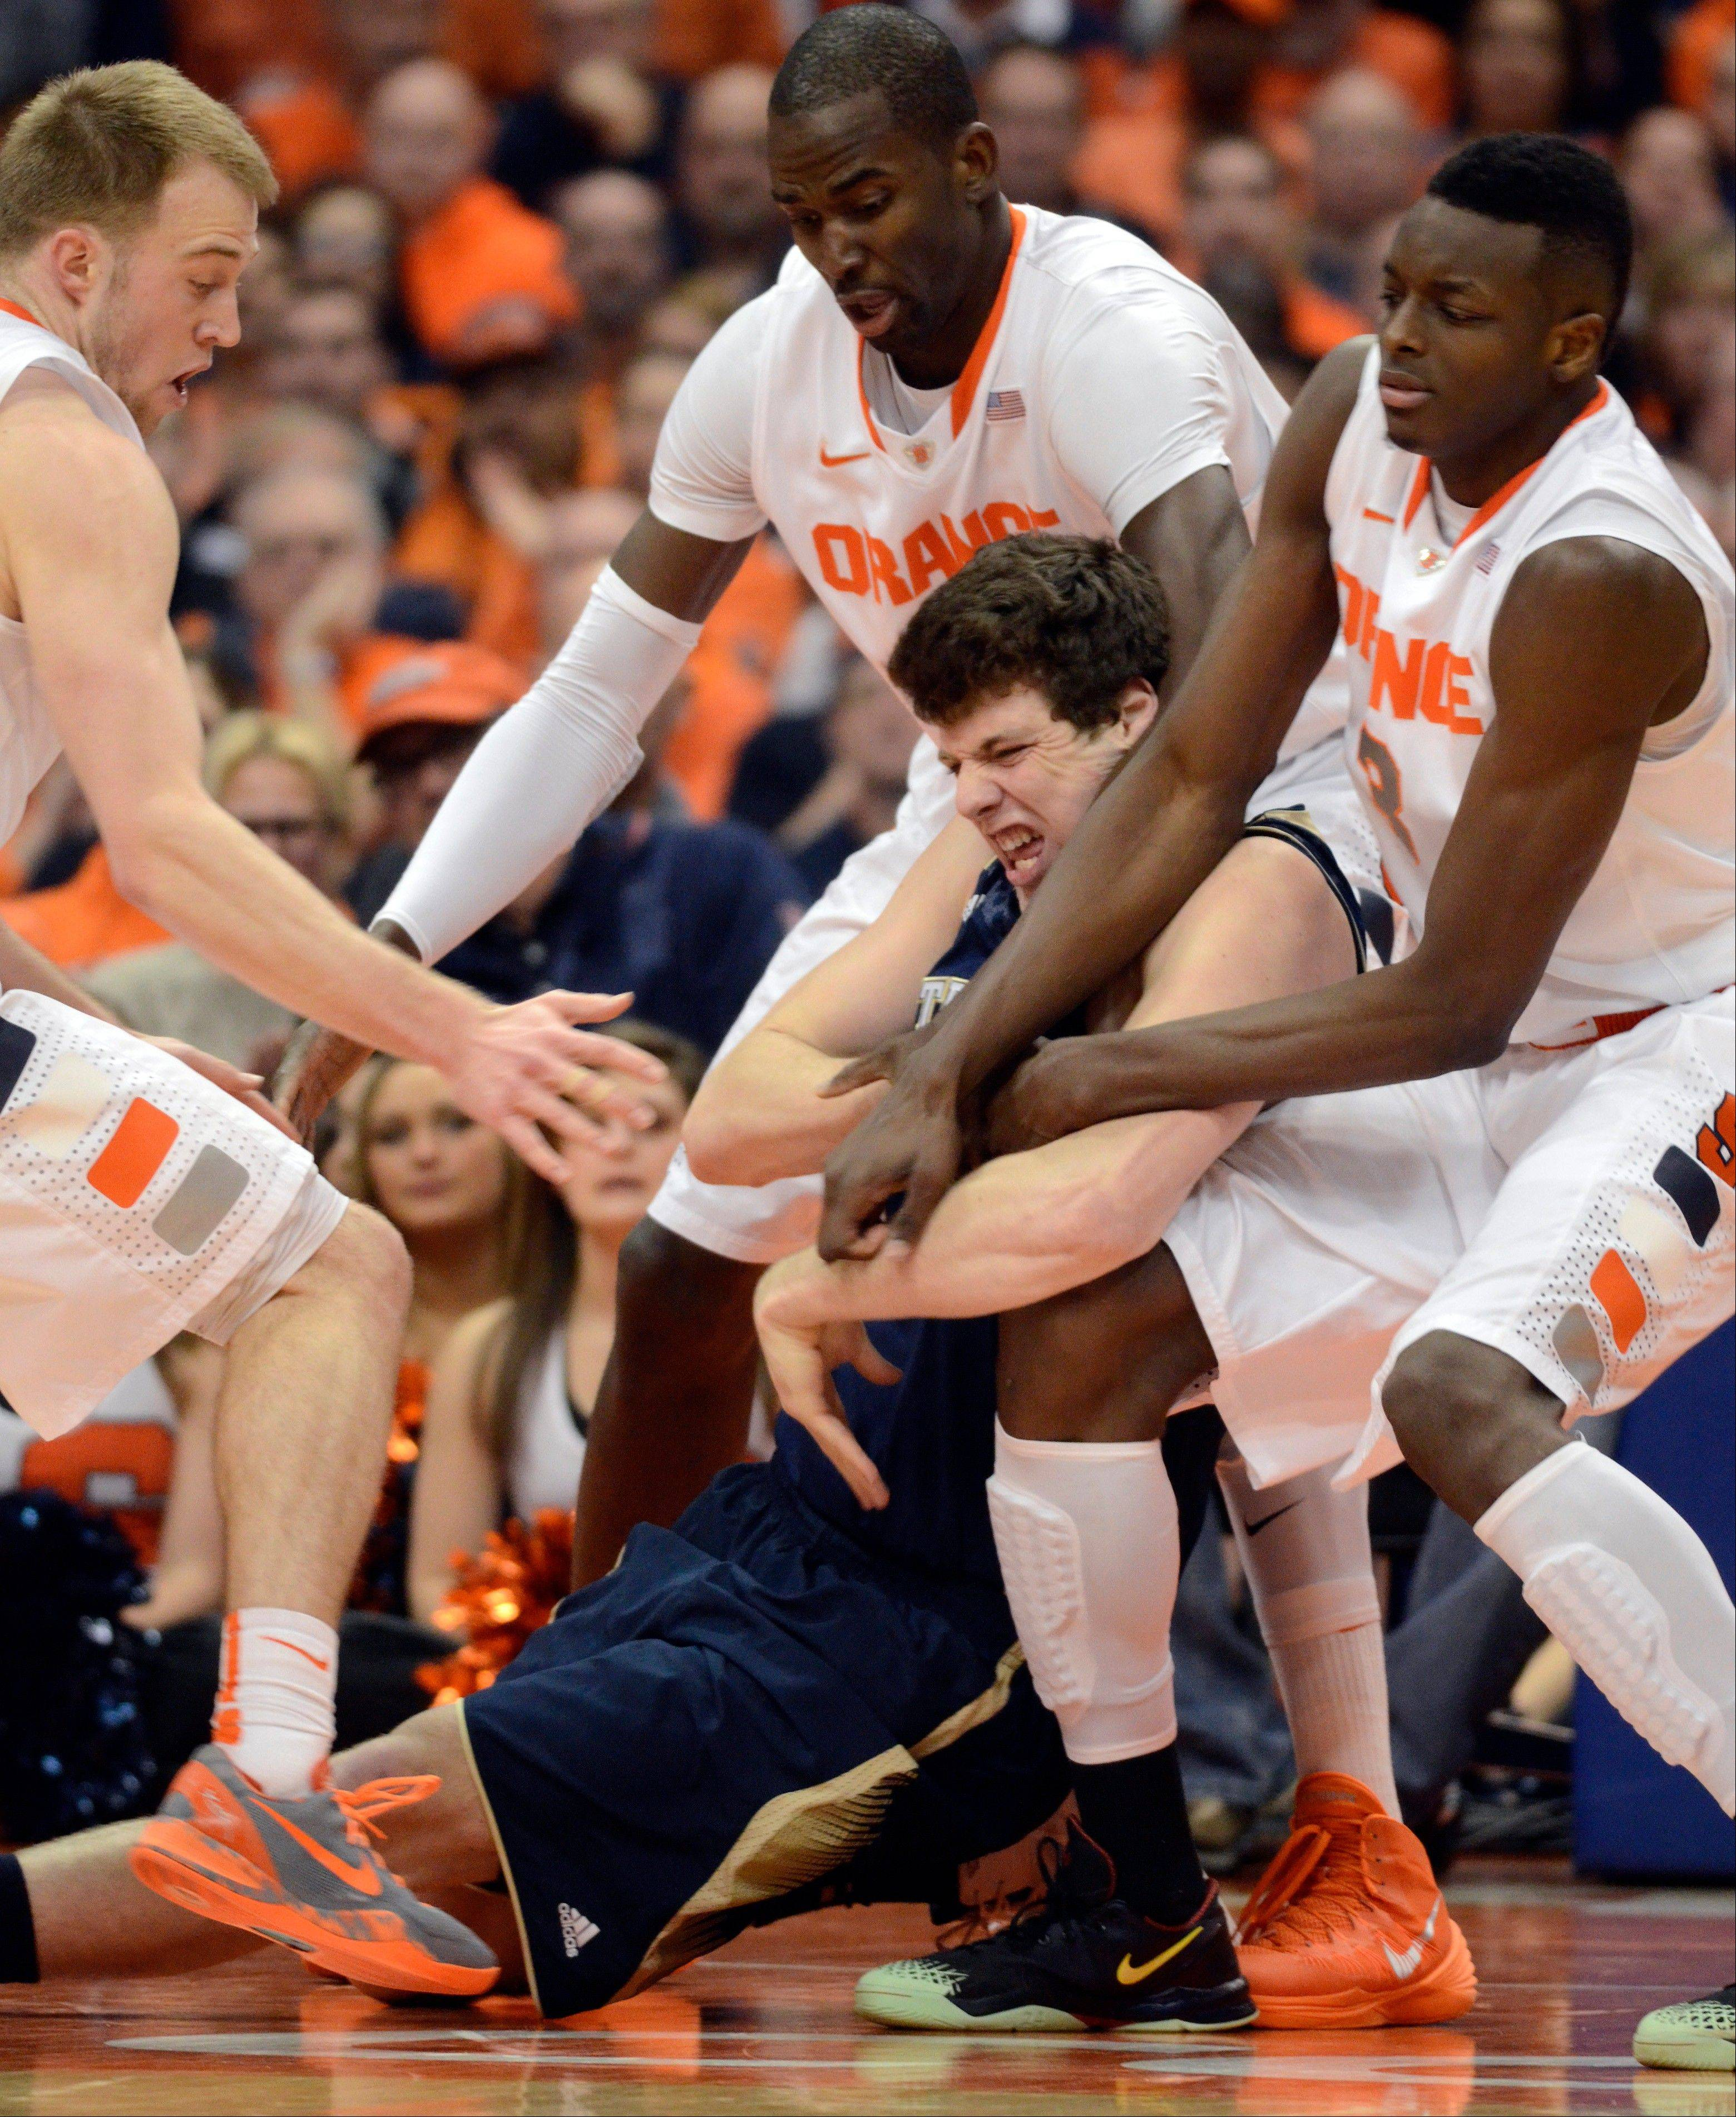 Notre Dame's Tom Knight battles with Syracuse's, from left, Trevor Cooney, Baye Moussa Kieta and Jerami Grant for a loose ball during the second half of an NCAA college basketball game in Syracuse, N.Y., Monday, Feb. 3, 2014. Syracuse won 61-55.